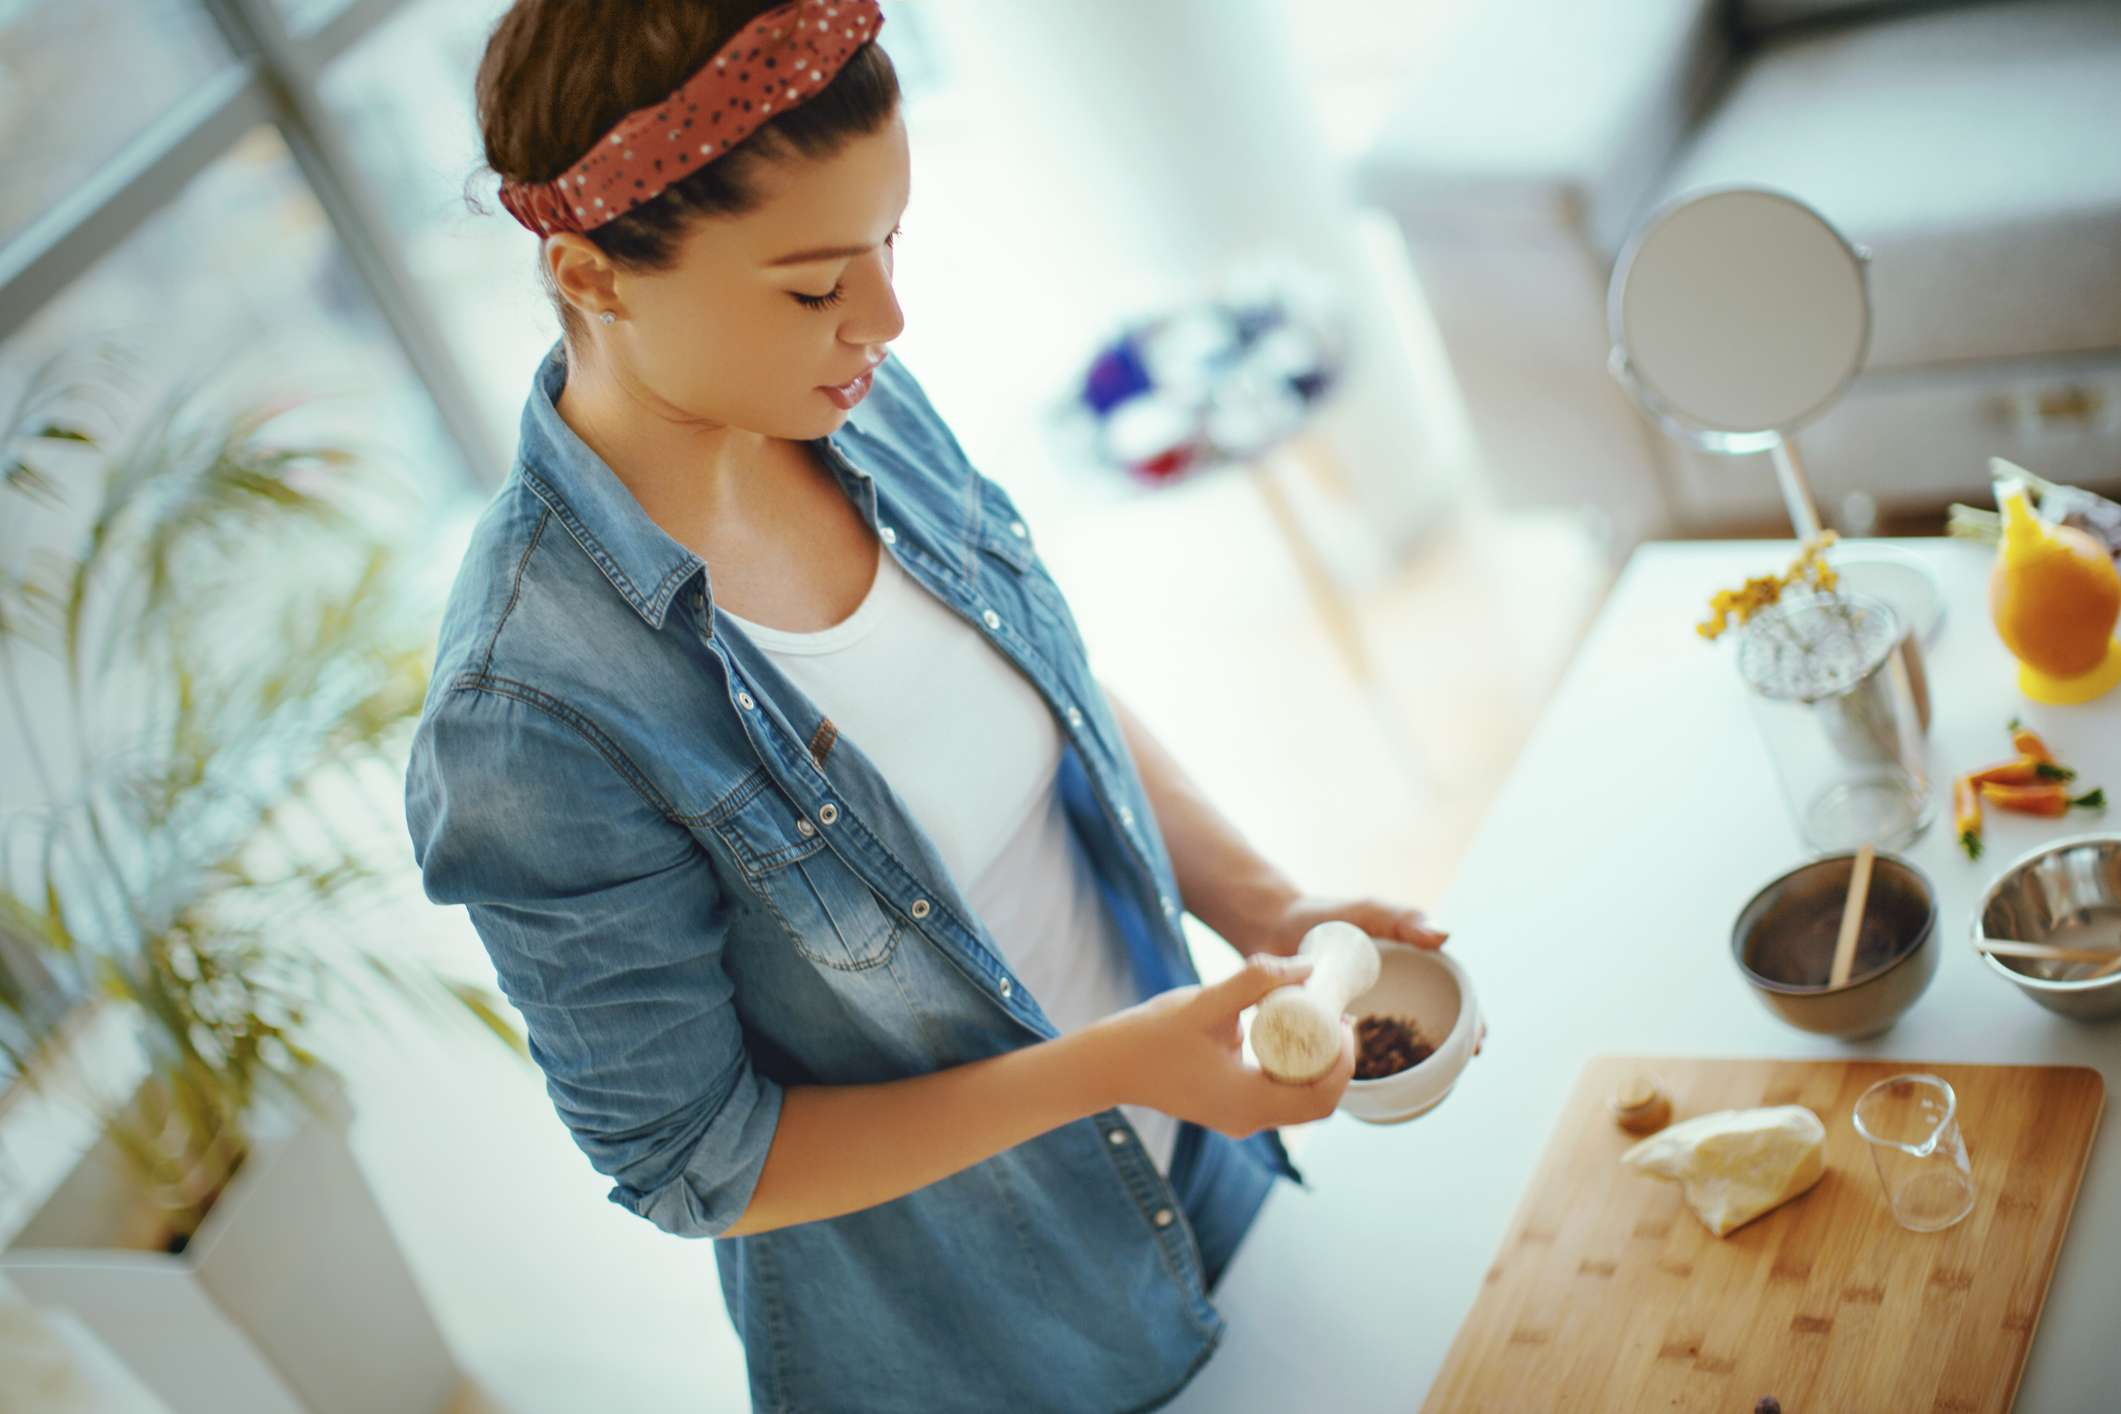 A young white woman making her own cosmetics at home.